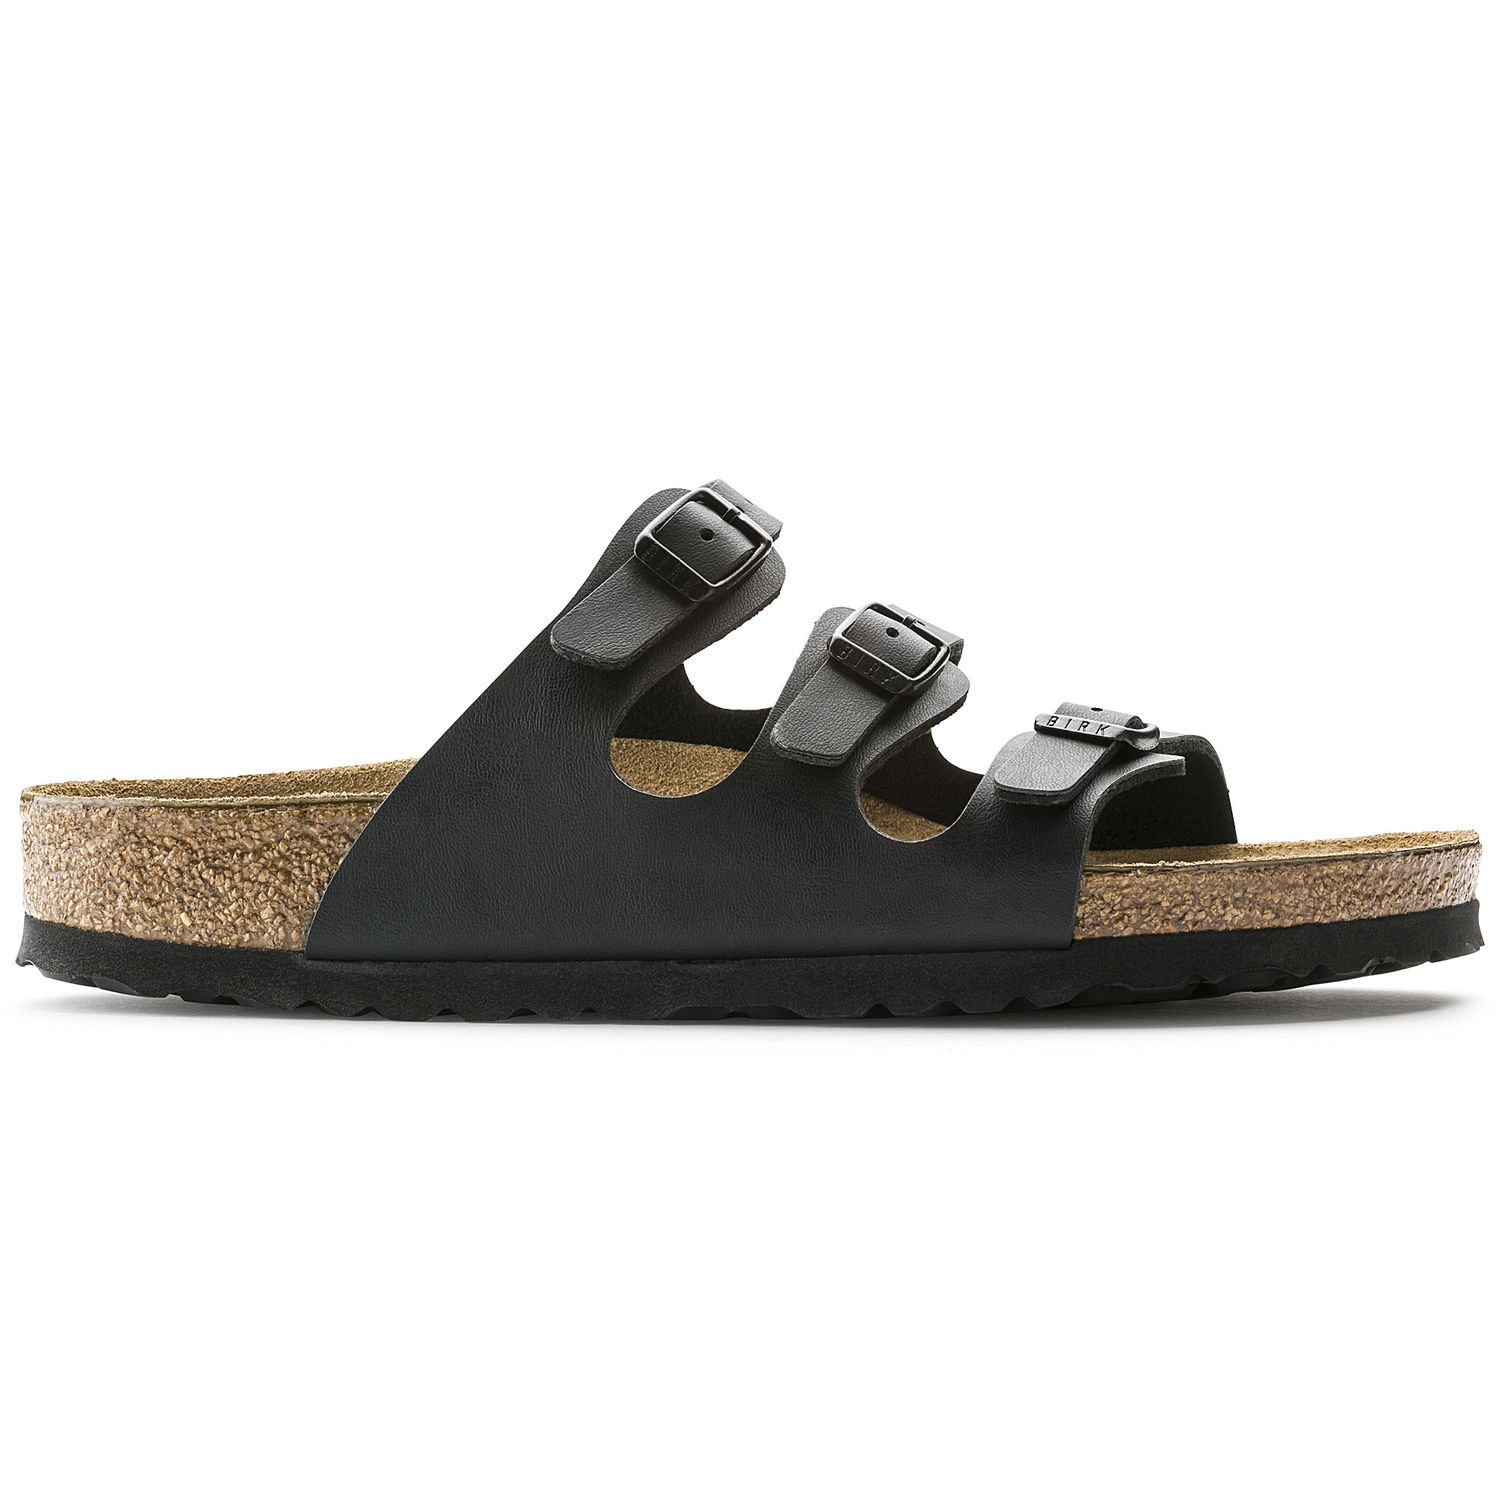 Image of   Sort Florida fra Birkenstock med smalle remme og narrow fit - 36